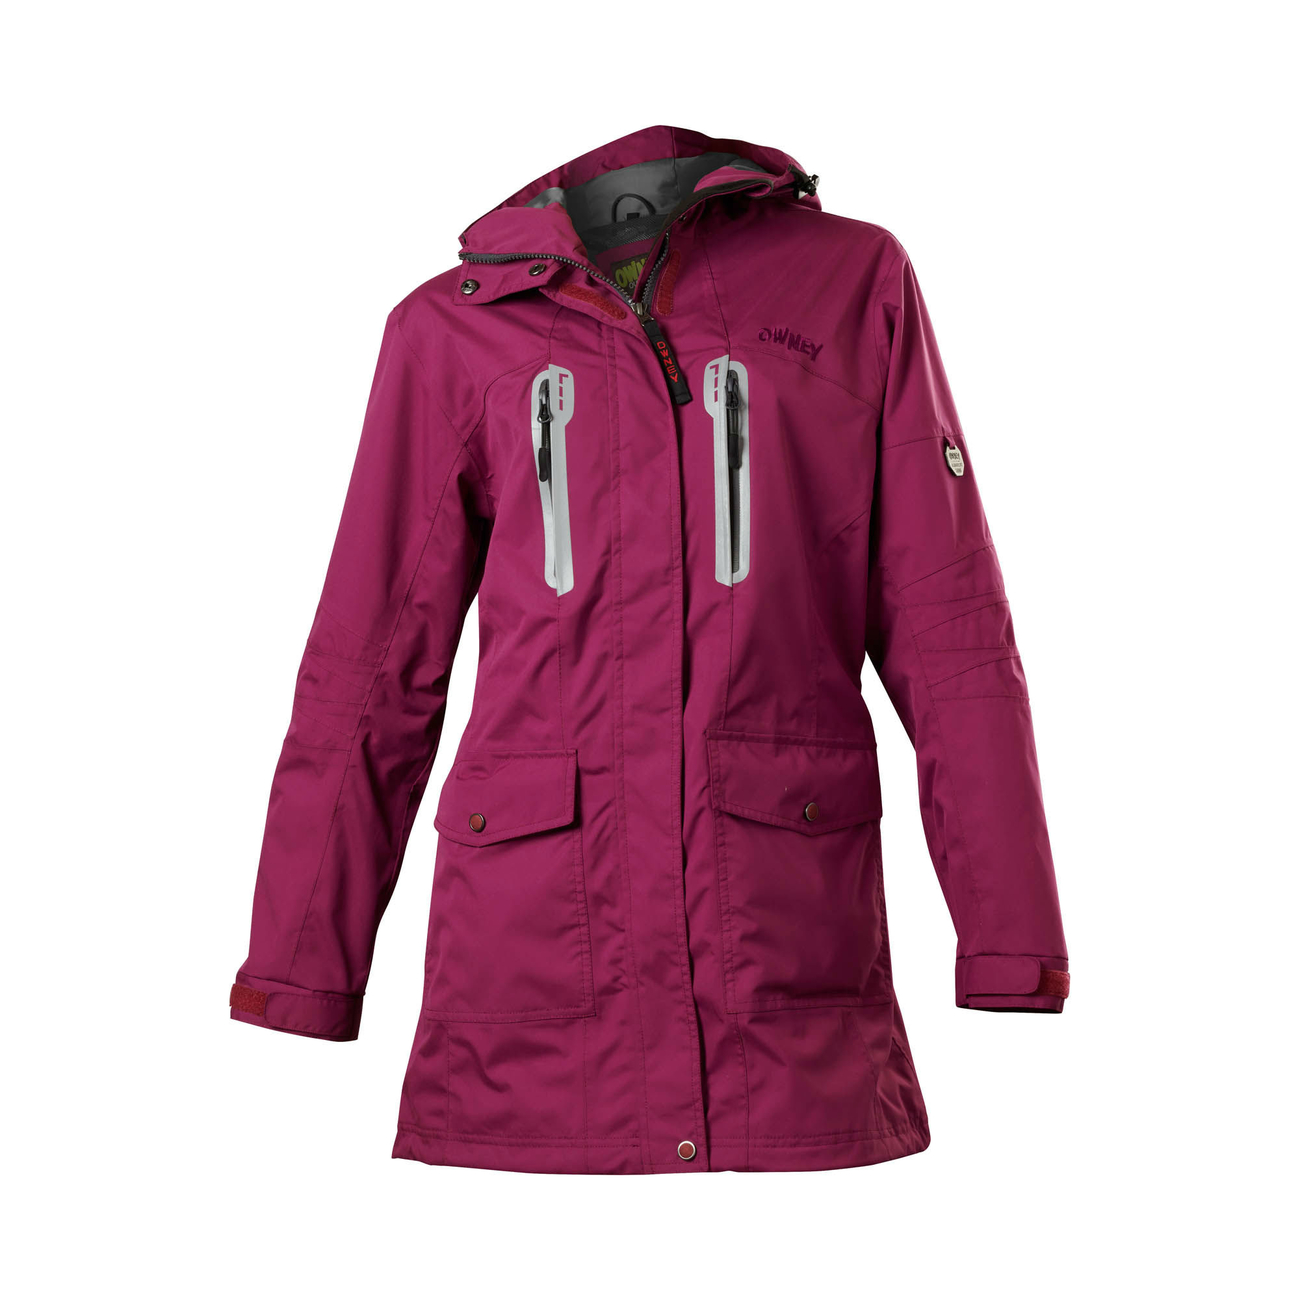 Owney Outdoor Damenparka Arnauti, Bild 9